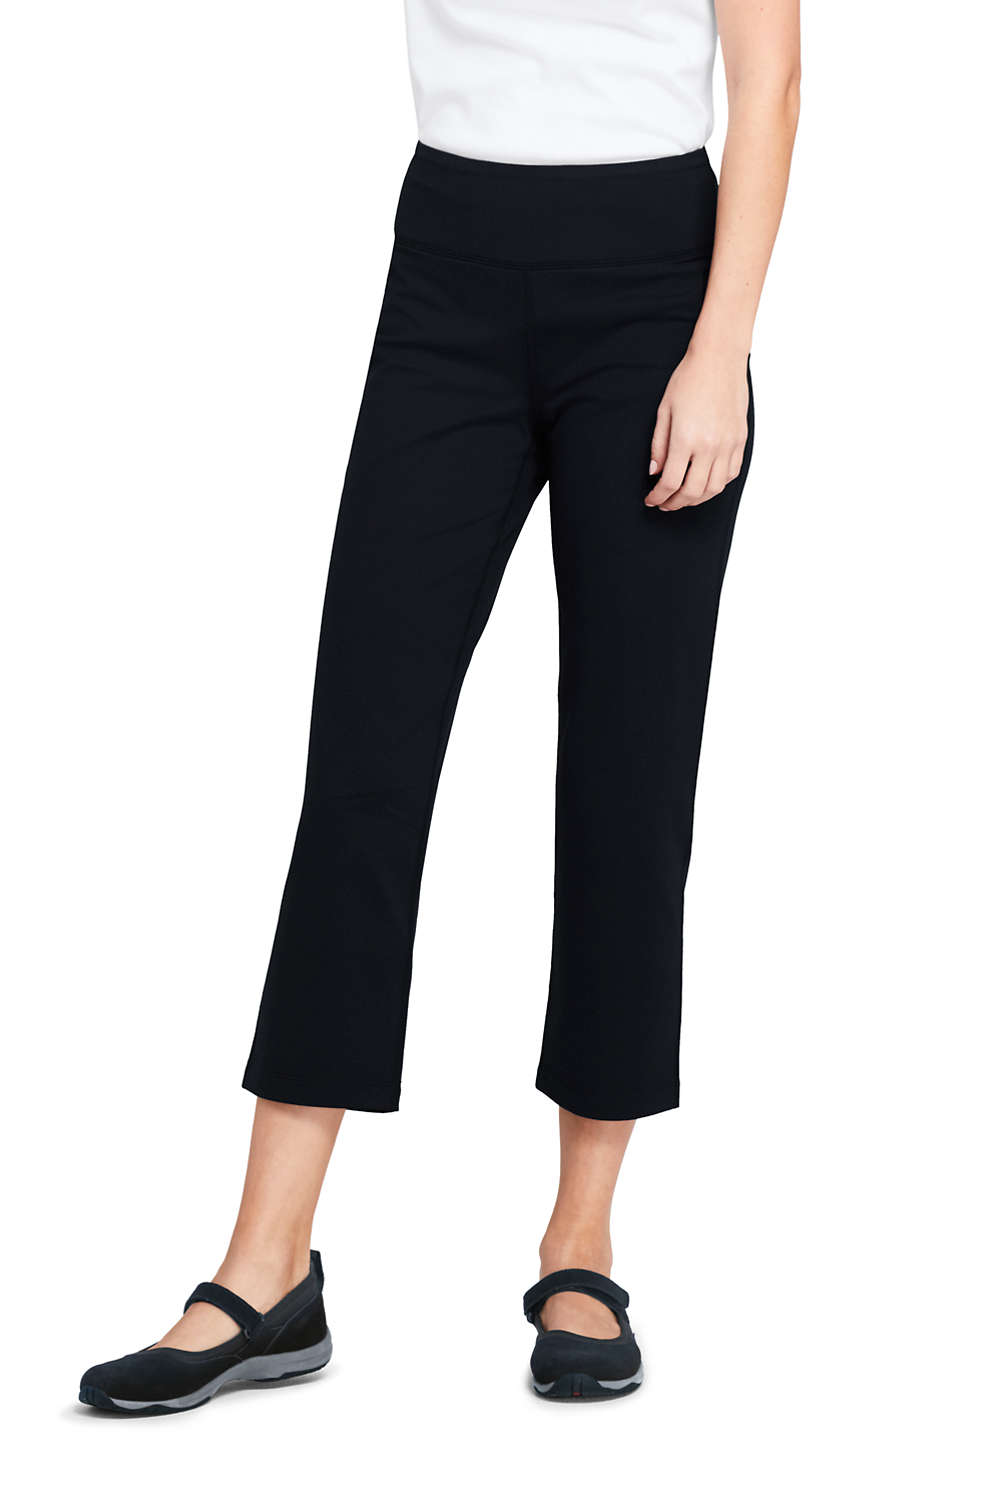 78389219f626 Women s Active Capri Yoga Pants from Lands  End